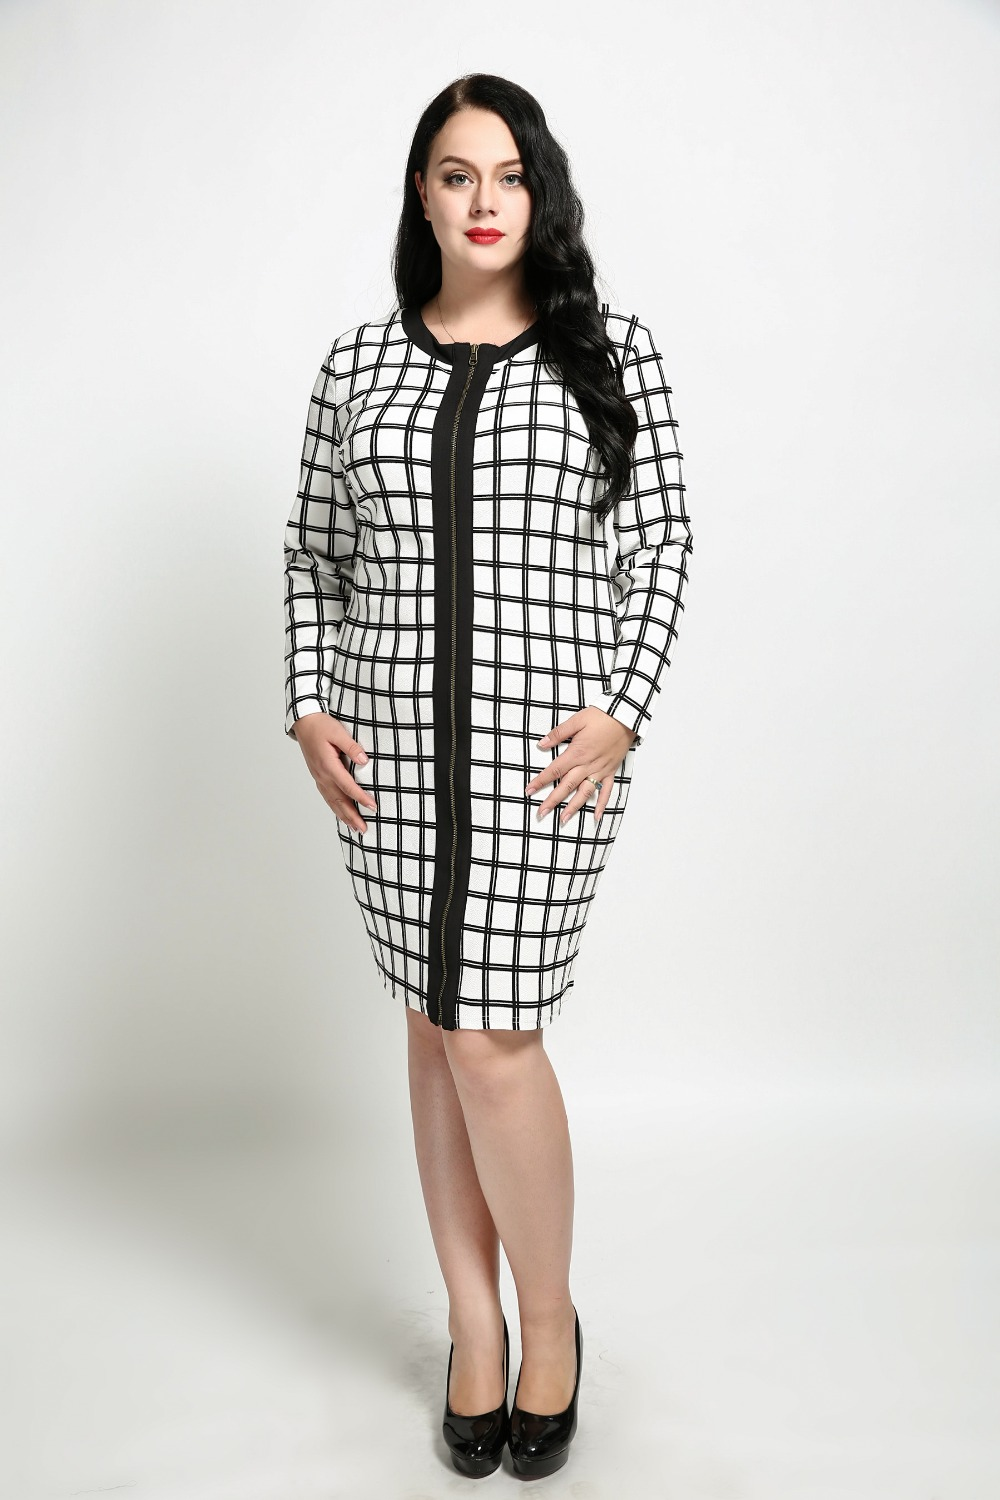 Women s Sexy Long Sleeve Plus Size Cocktail Party Dress Black Plaid Cell  Casual Dress Knee Length Midi Sheath Dress Autumn Dress-in Dresses from  Women s ... f4a23b032bbb